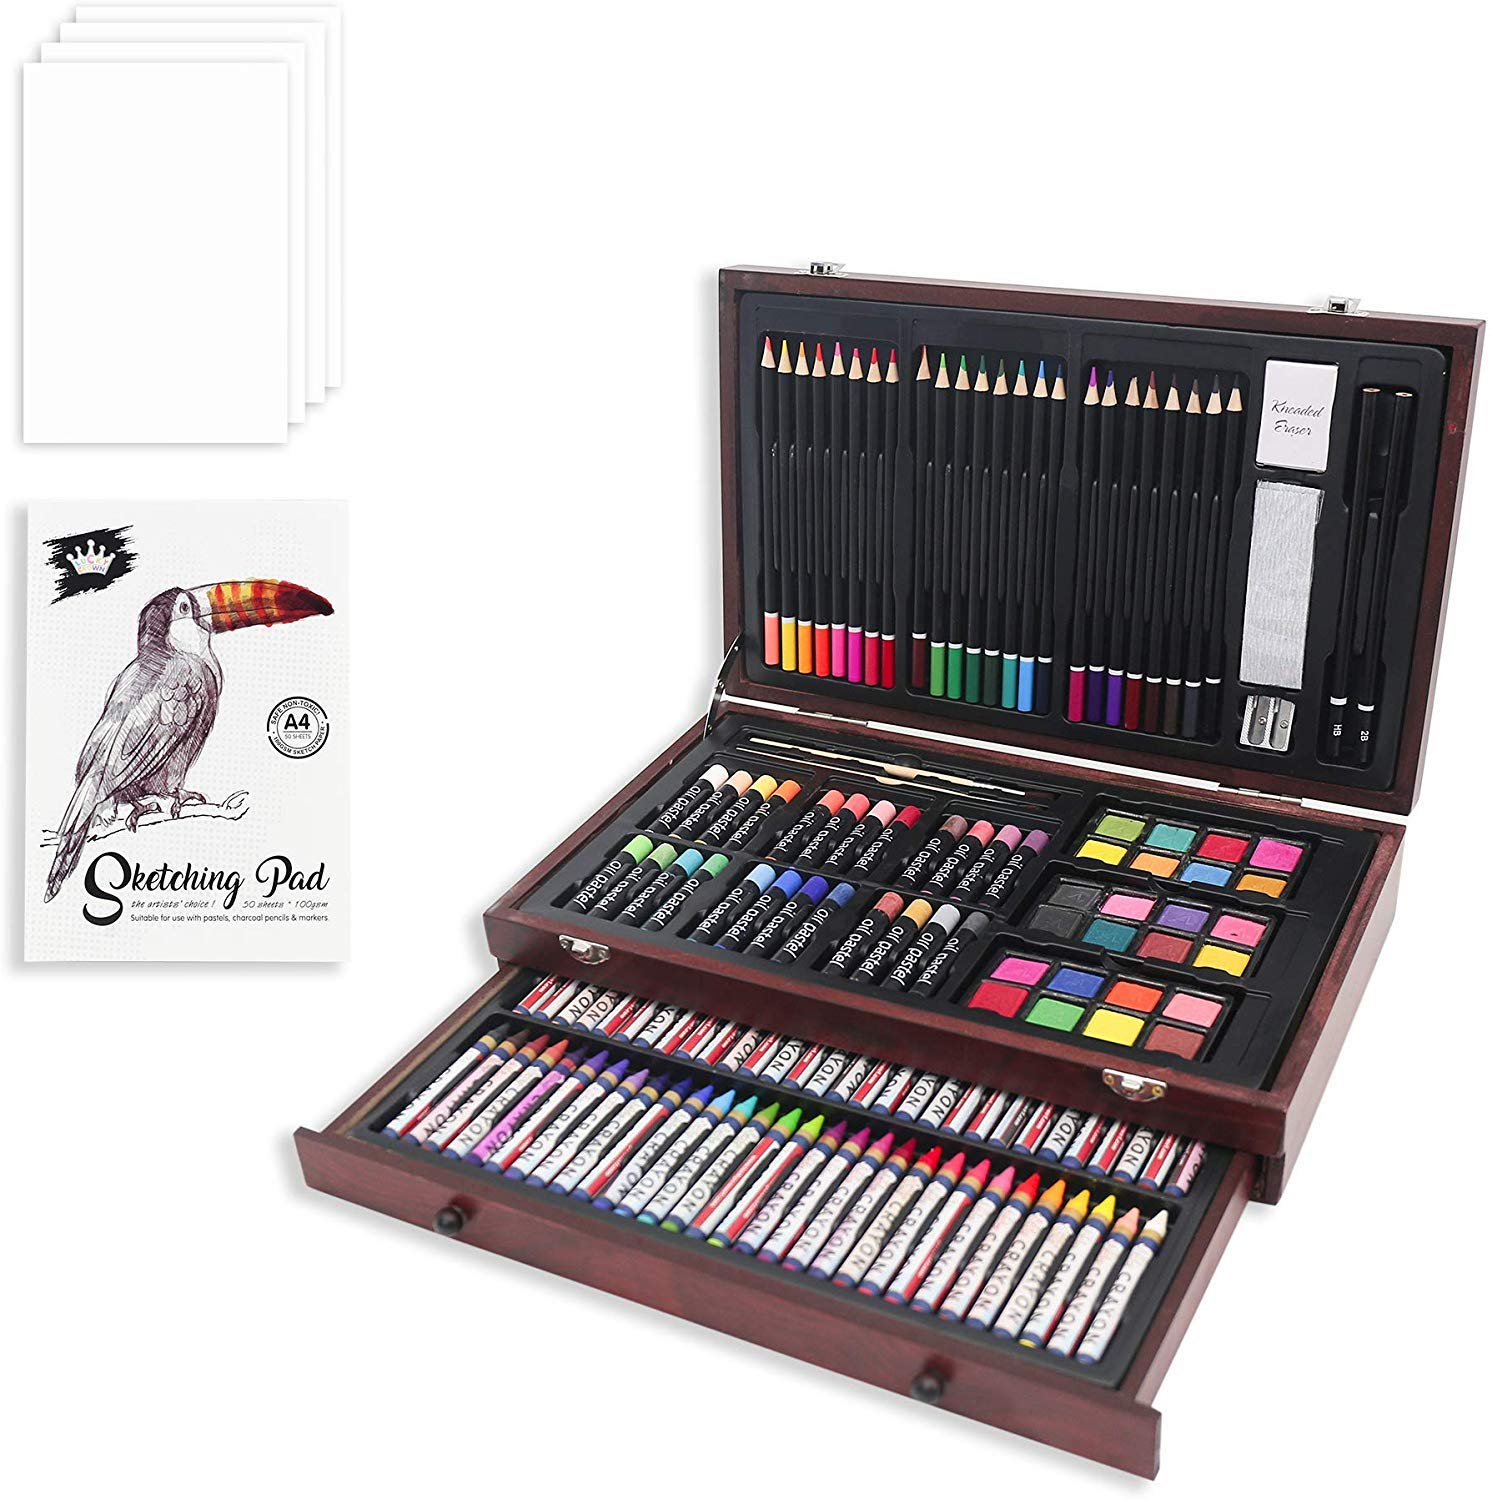 147 Piece Deluxe Art Set,Art Kit for Drawing & Painting,Colored Pencils,Oil Pastel,Art Supplies with Wooden Box for Kids,Teens & Adults by LUCKY CROWN